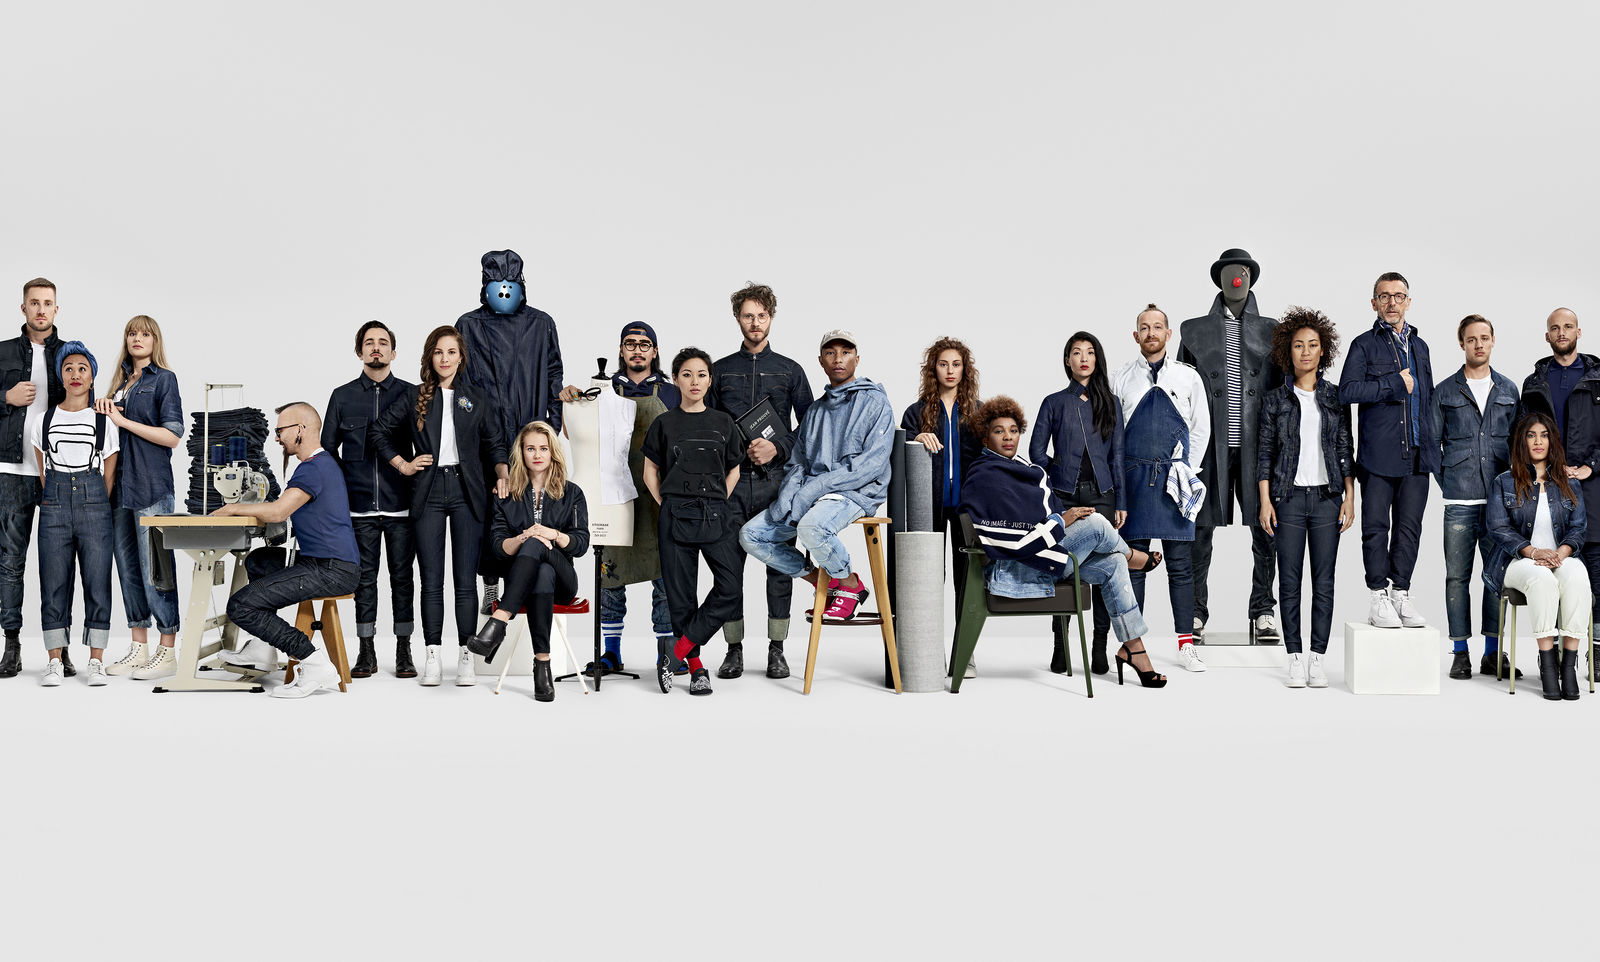 G-STAR RAW FOOTWEAR (Image 2)